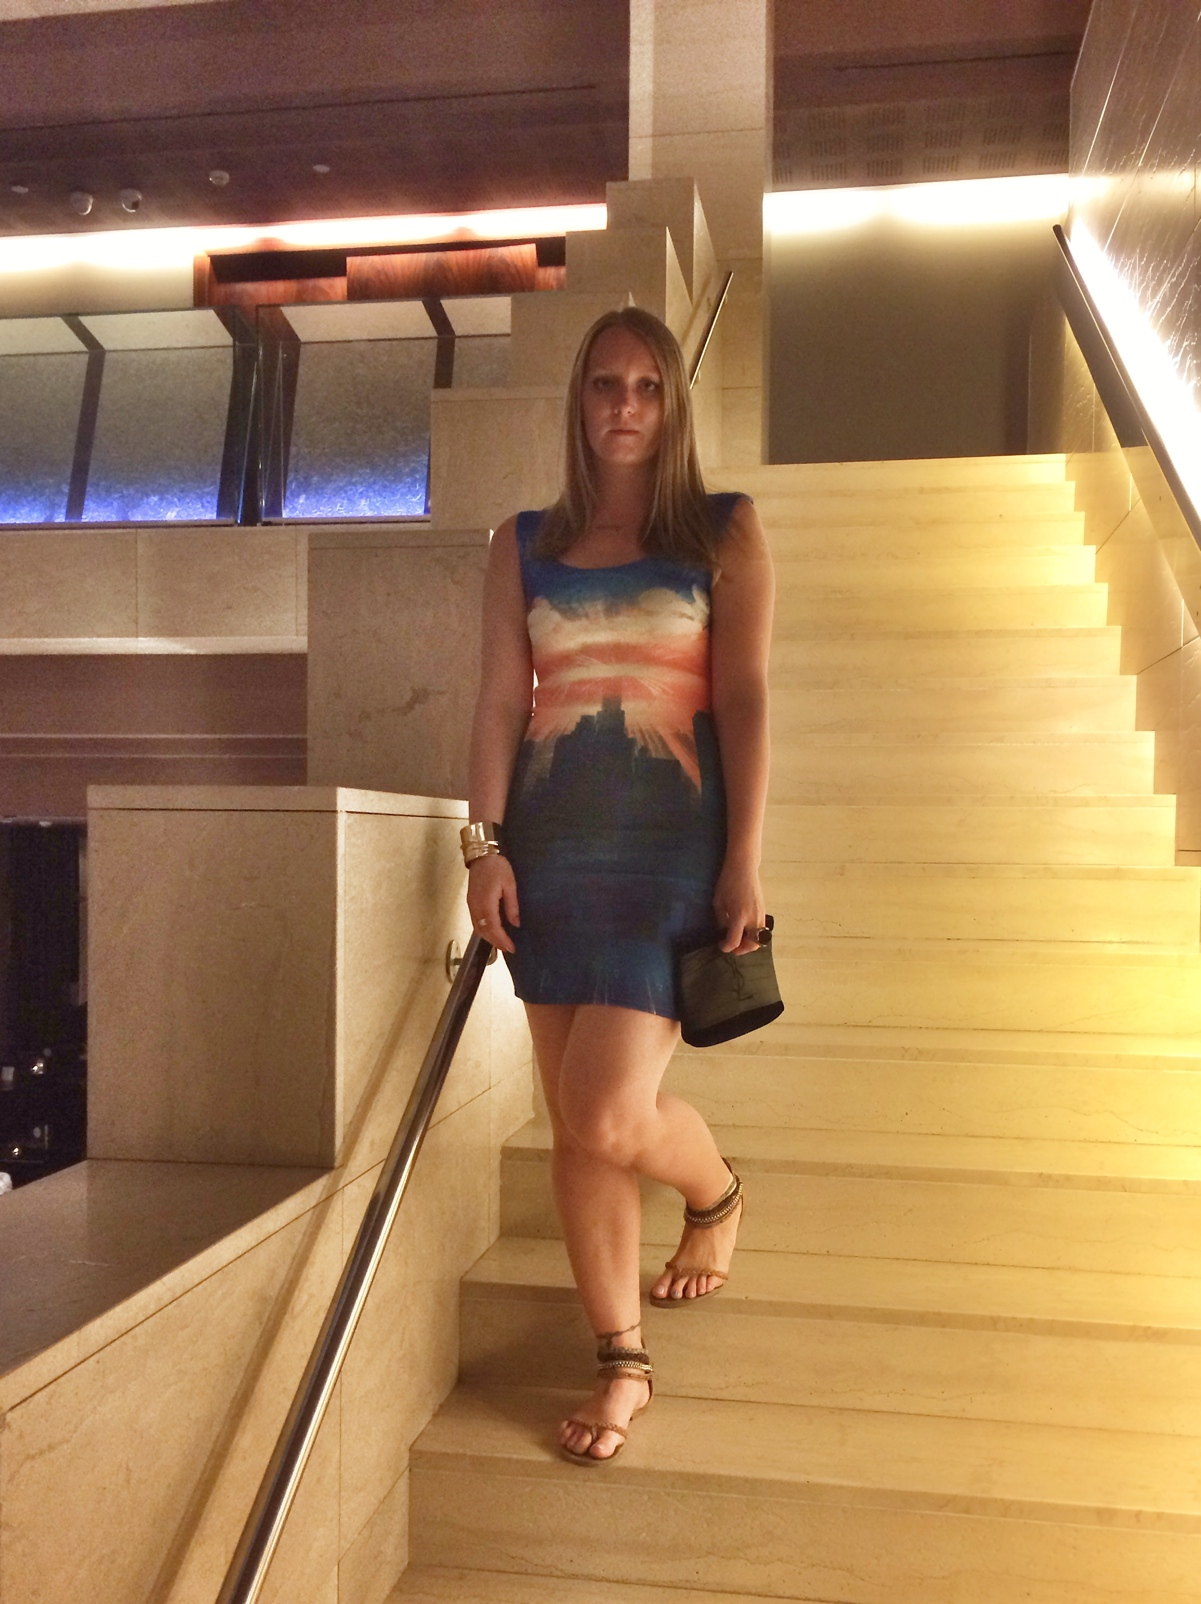 Sunset-dress-barcelona-hotel-miramar